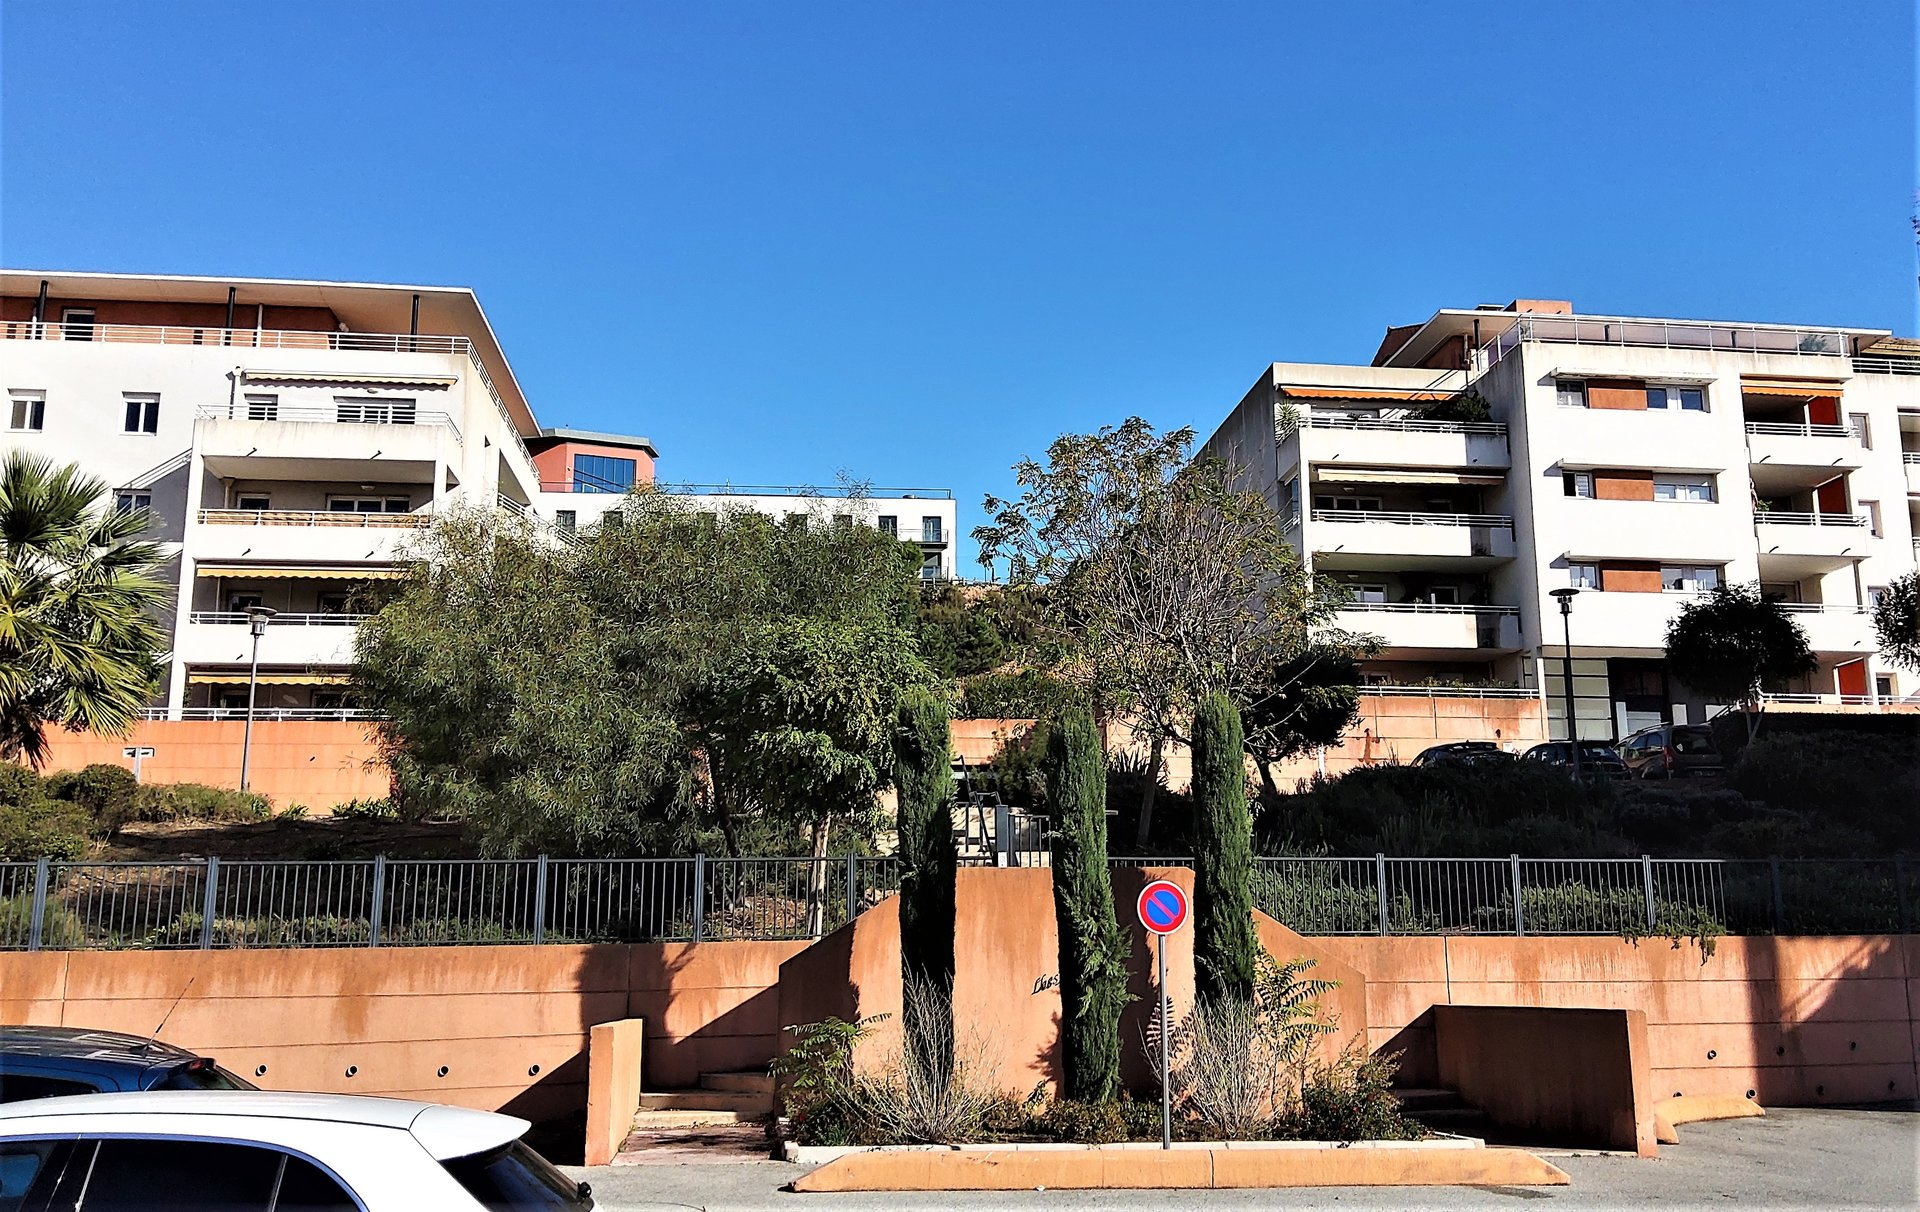 For sale: ST .RAPHAËL,Spacious T3 in perfect condition in a quiet area, in a secure residence, close to the center, schools and shops